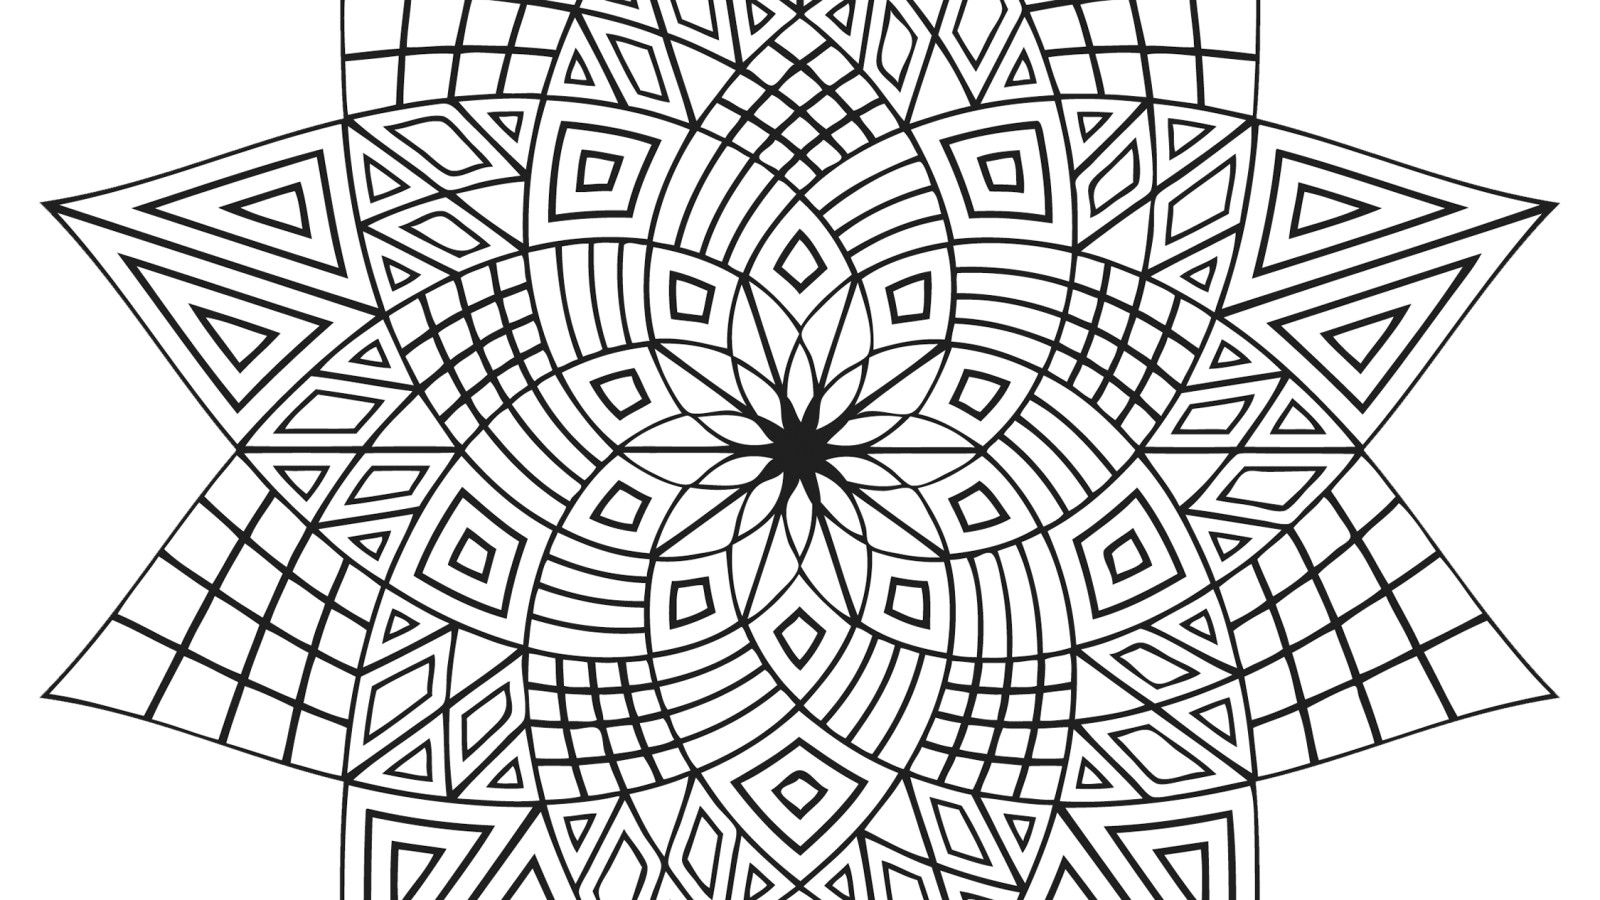 Charmant Islamic Geometric Patterns Coloring Pages | Hagio Graphic